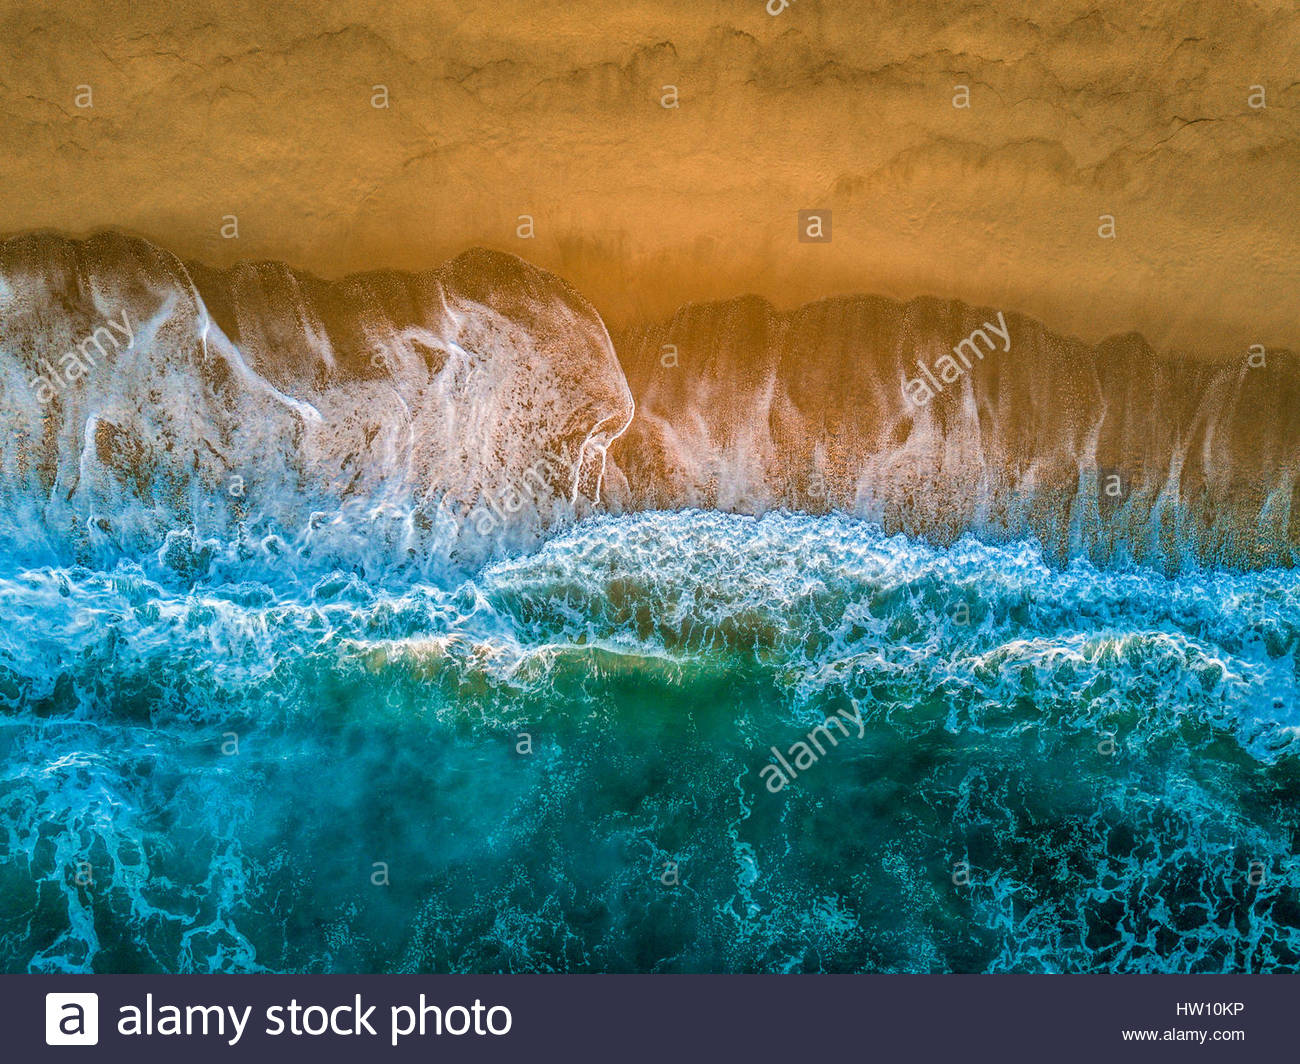 An aerial view of waves crashing against the Baja coastline. - Stock Image